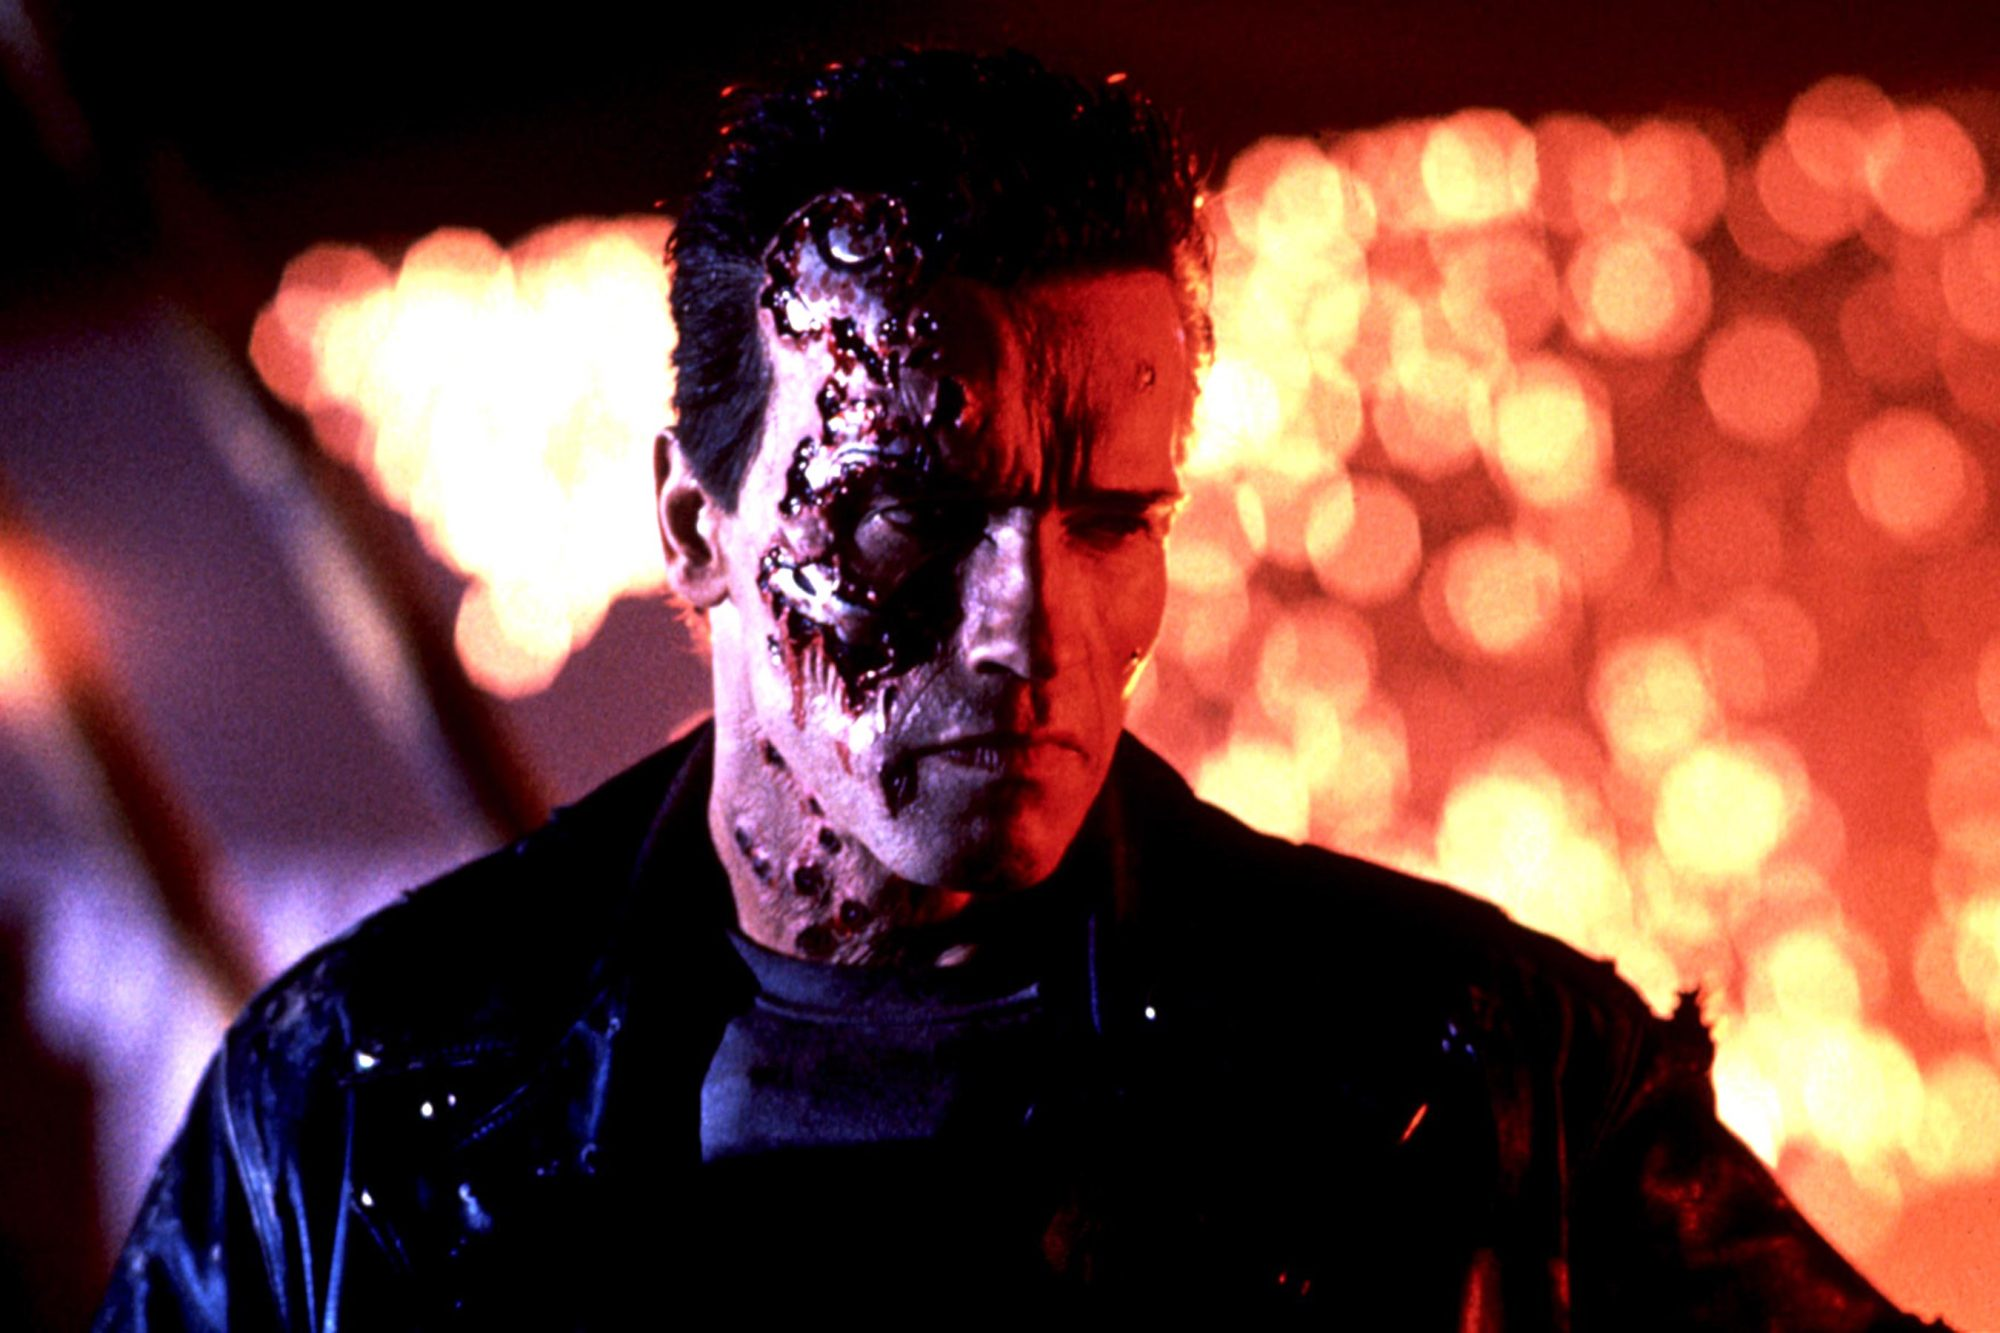 TERMINATOR 2 : JUDGEMENT DAY, Arnold Schwarzenegger, 1991